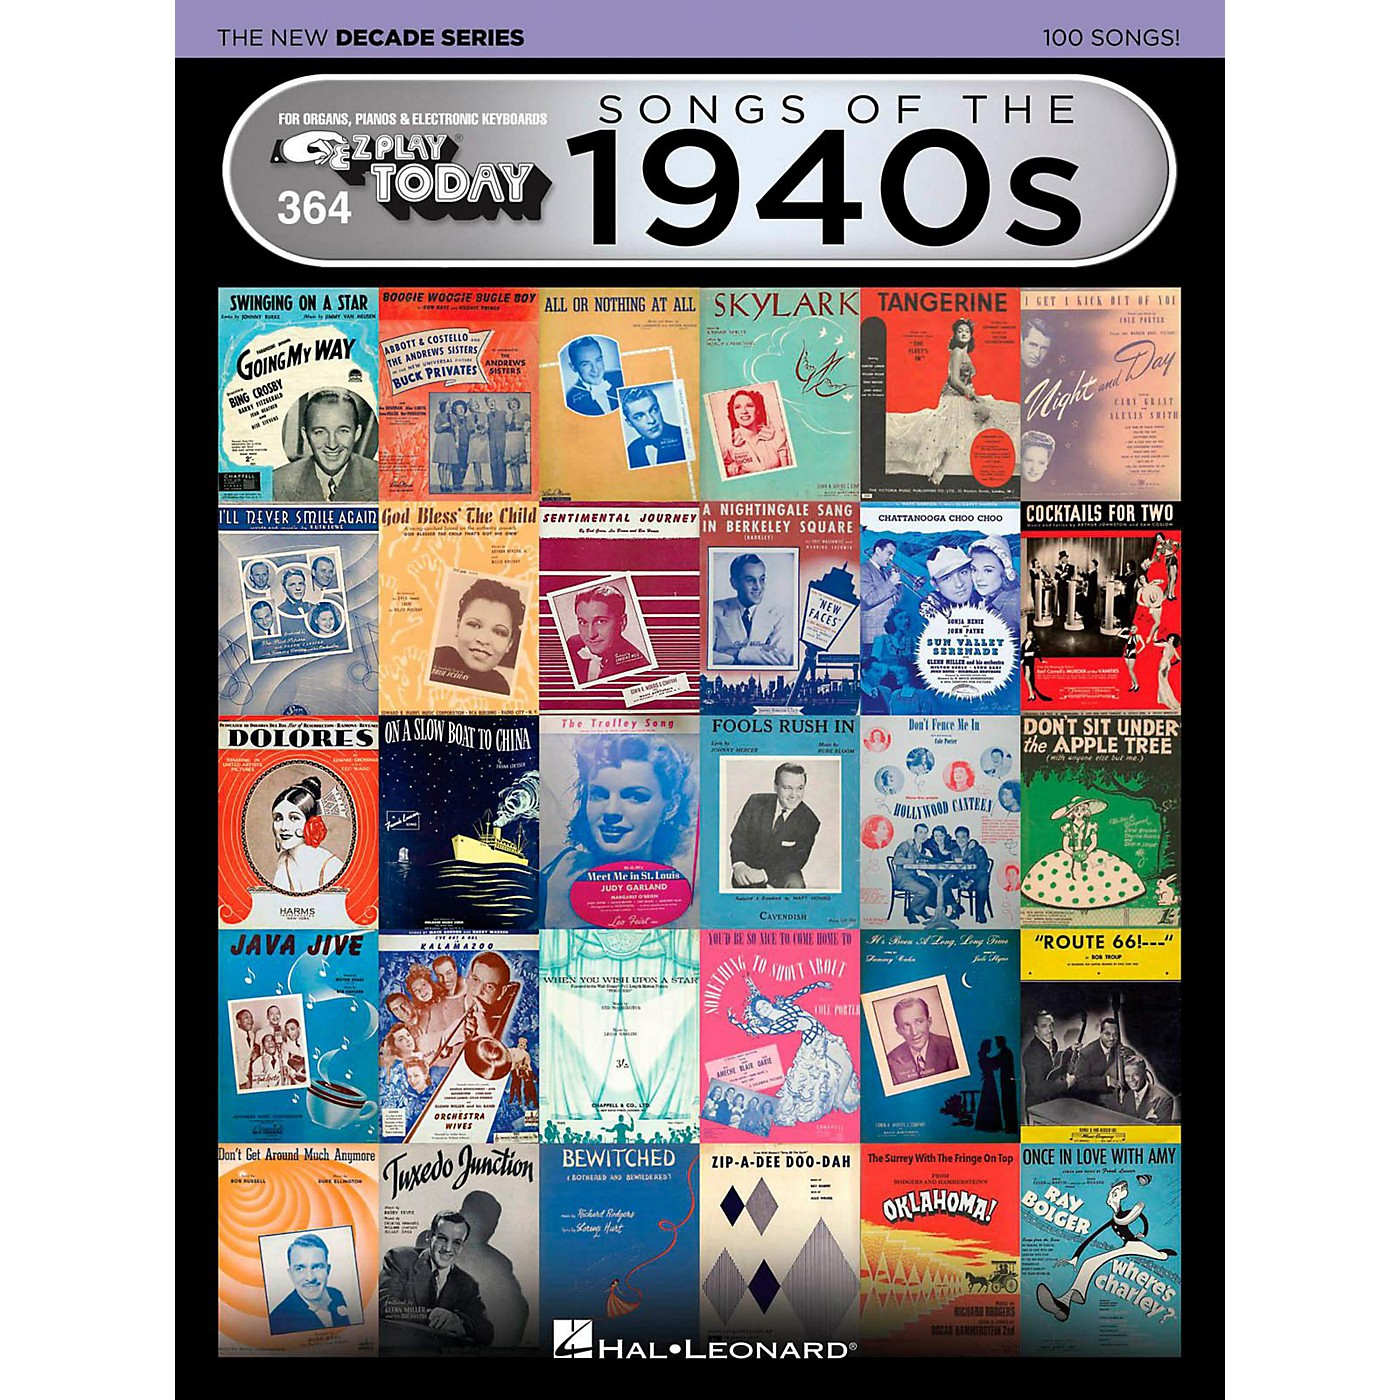 Hal Leonard Songs Of The 1940s - The New Decade Series E-Z Play Today Volume 364 thumbnail